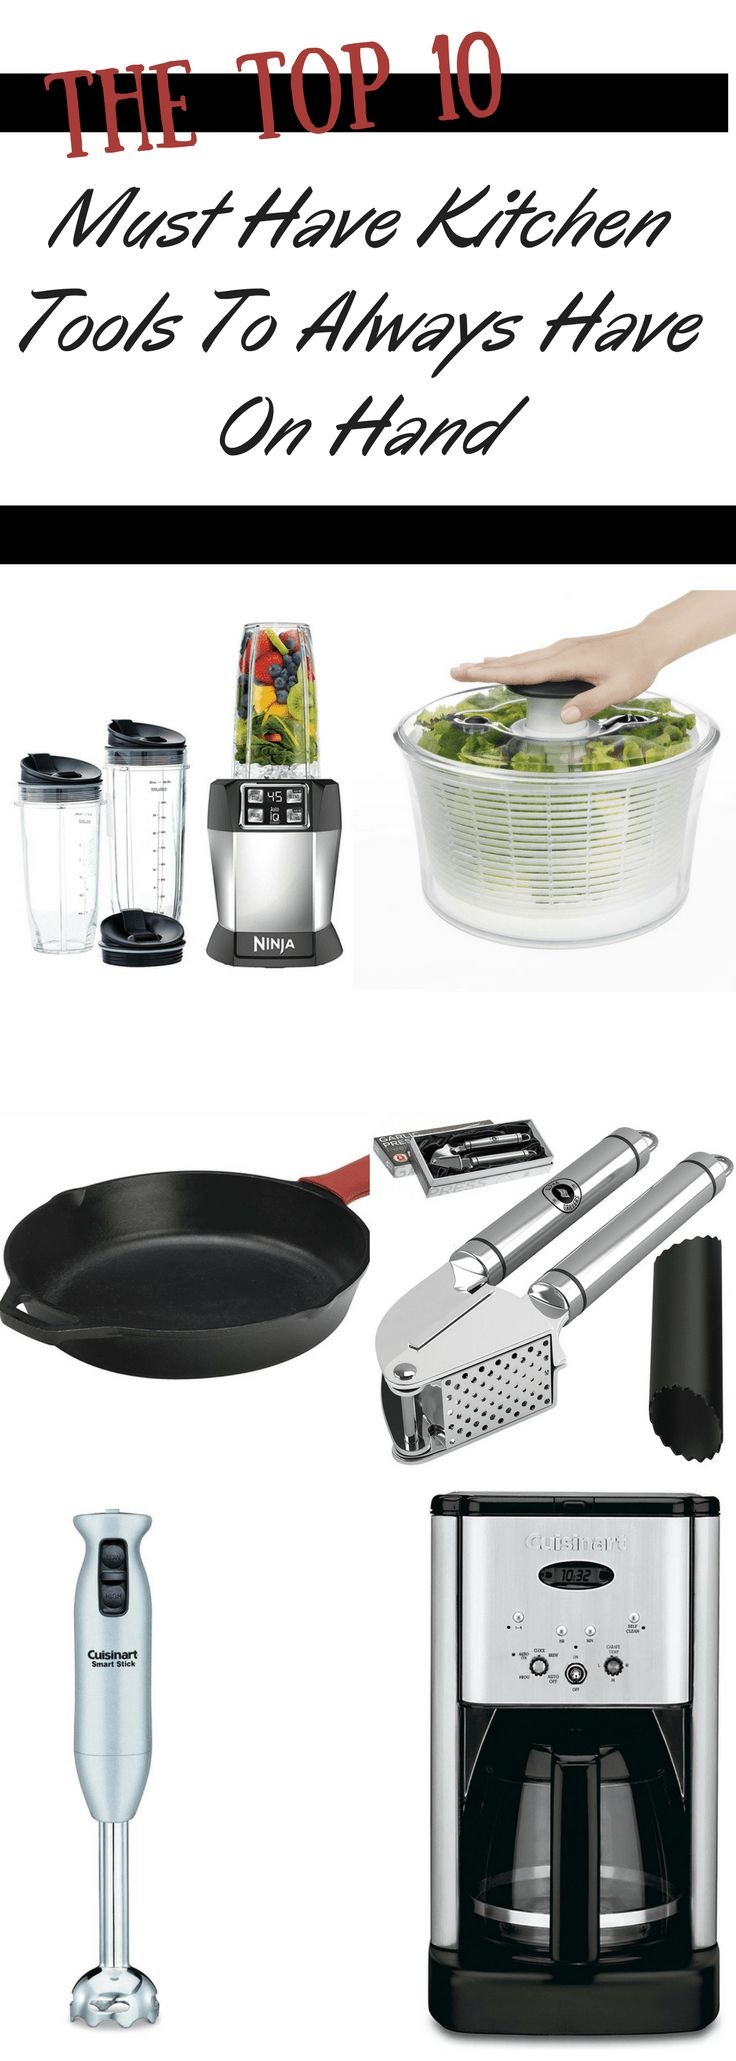 10 Kitchen And Home Decor Items Every 20 Something Needs: The Top 10 Must Have Kitchen Tools To Always Have On Hand